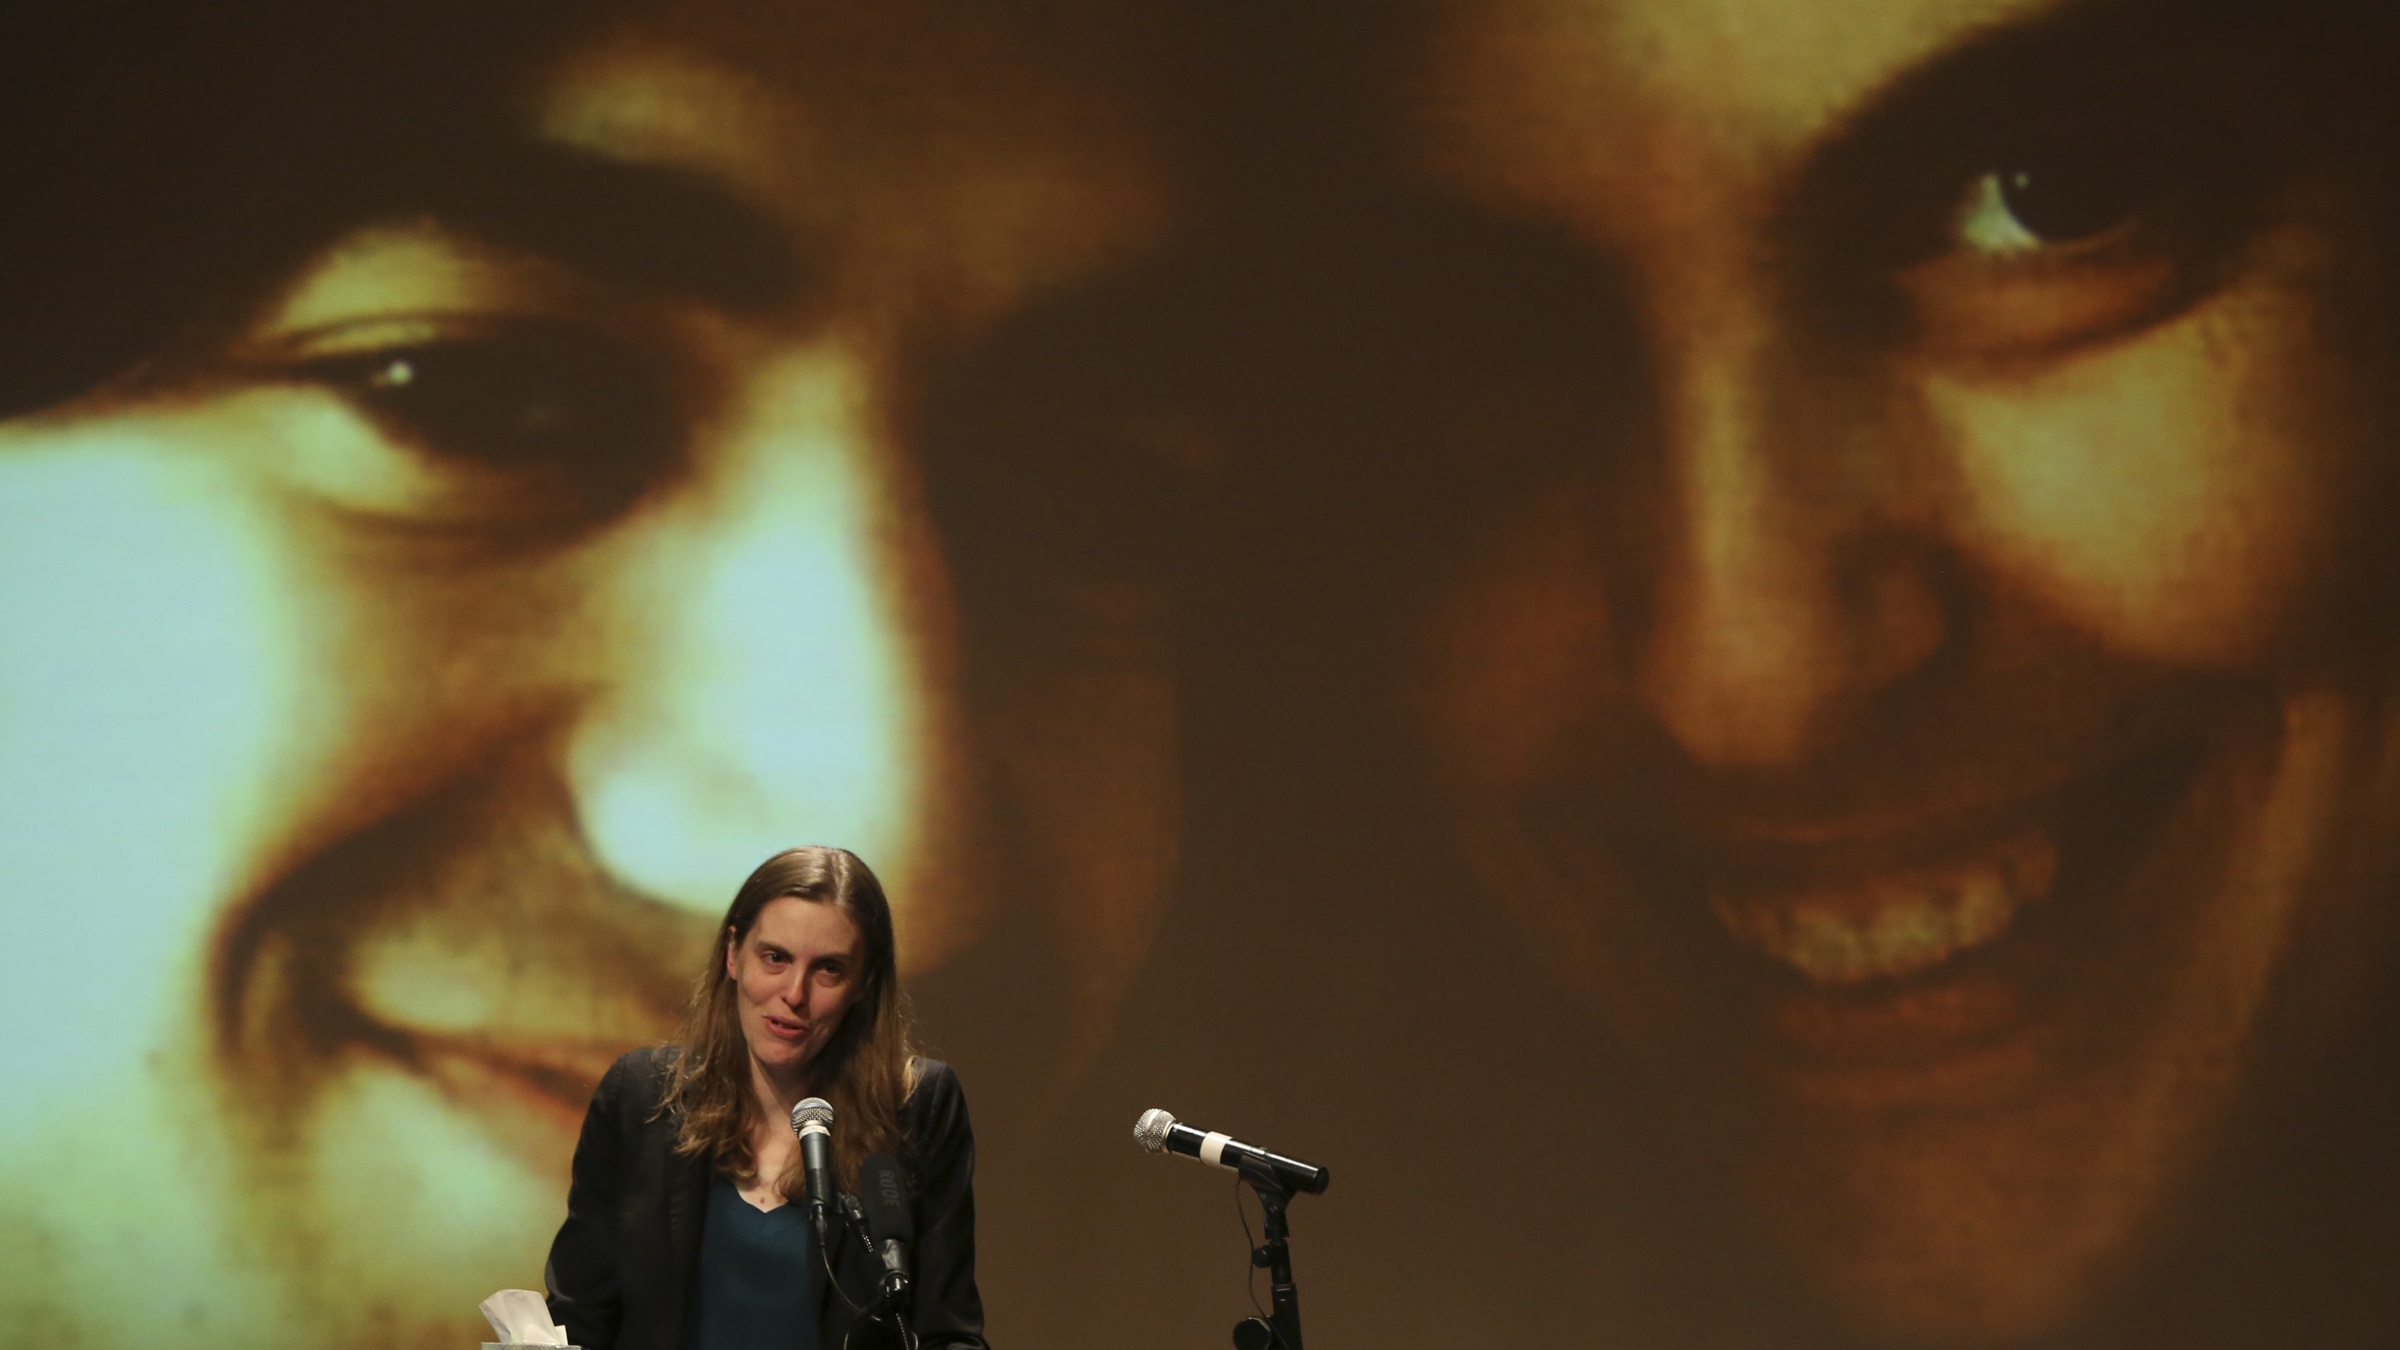 Taren Stinebrickner-Kauffman, Aaron Swartz's partner and Founder and Executive Director of SumOfUs.org, speaks during his memorial service, Saturday, Jan. 19, 2013 in New York. Friends and supporters of Swartz paid tribute Saturday to the free-information activist and online prodigy, who killed himself last week as he faced trial on hacking charges. (AP Photo/Mary Altaffer)